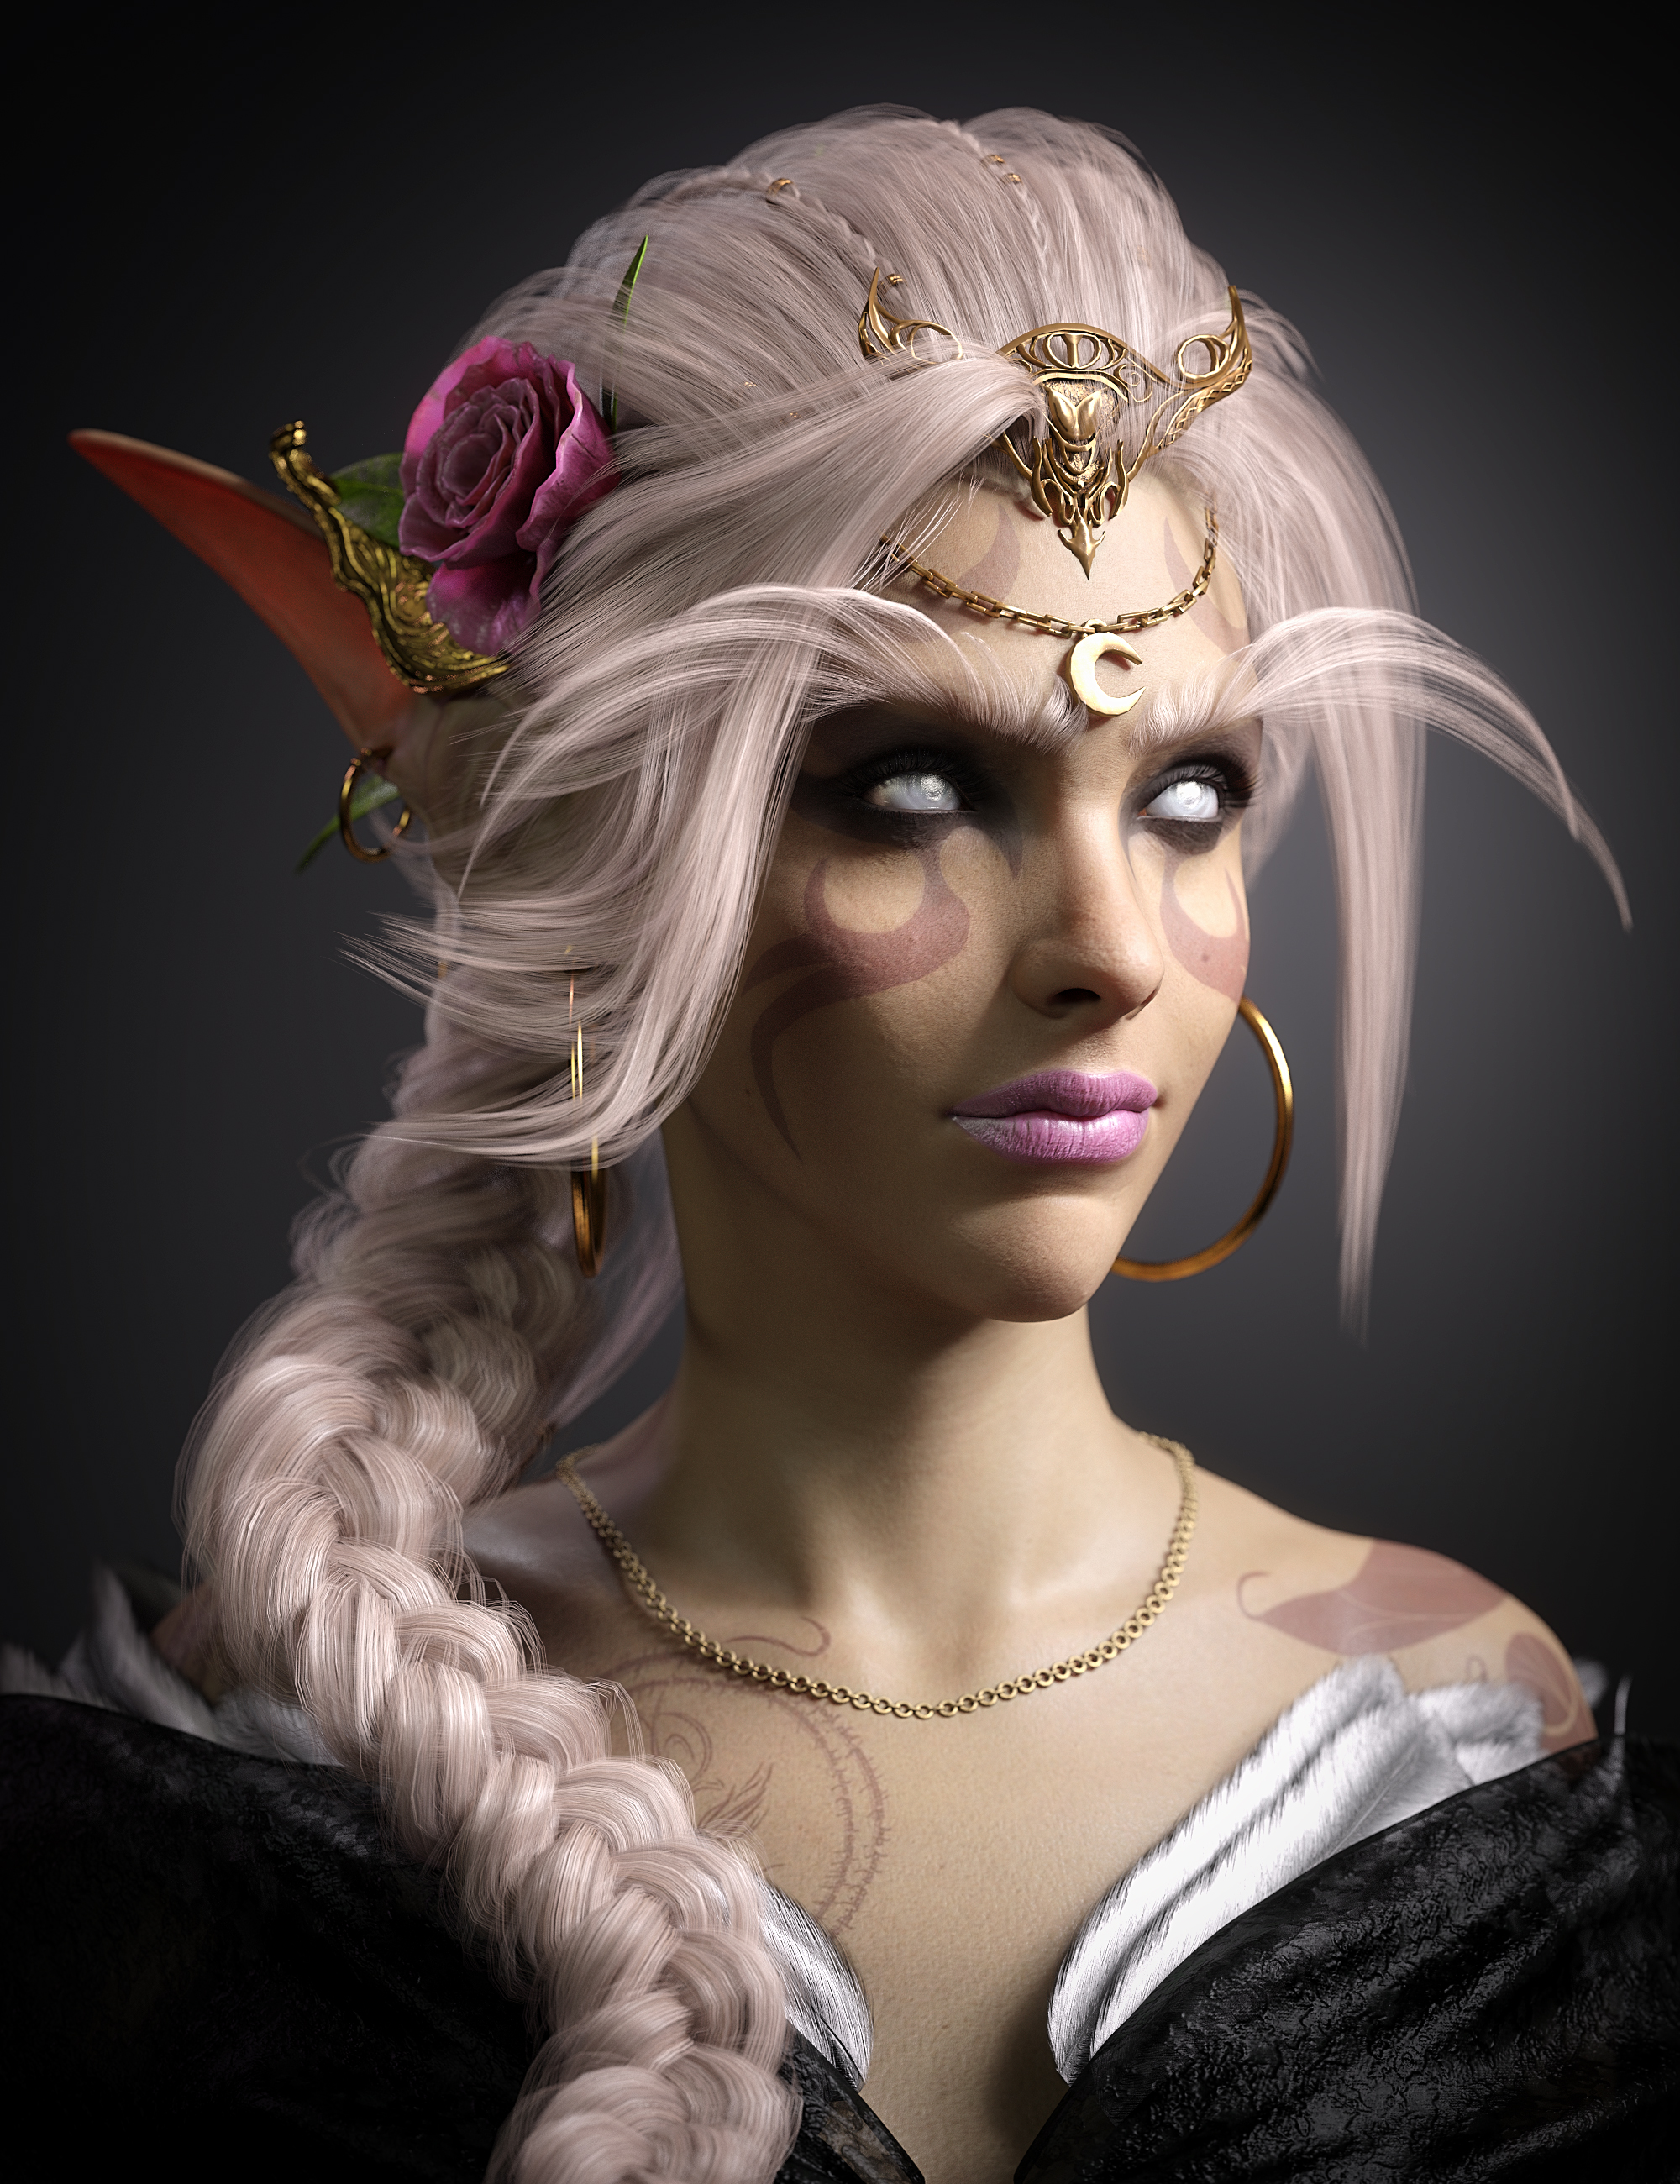 White Priestess 8.1 HD by: , 3D Models by Daz 3D